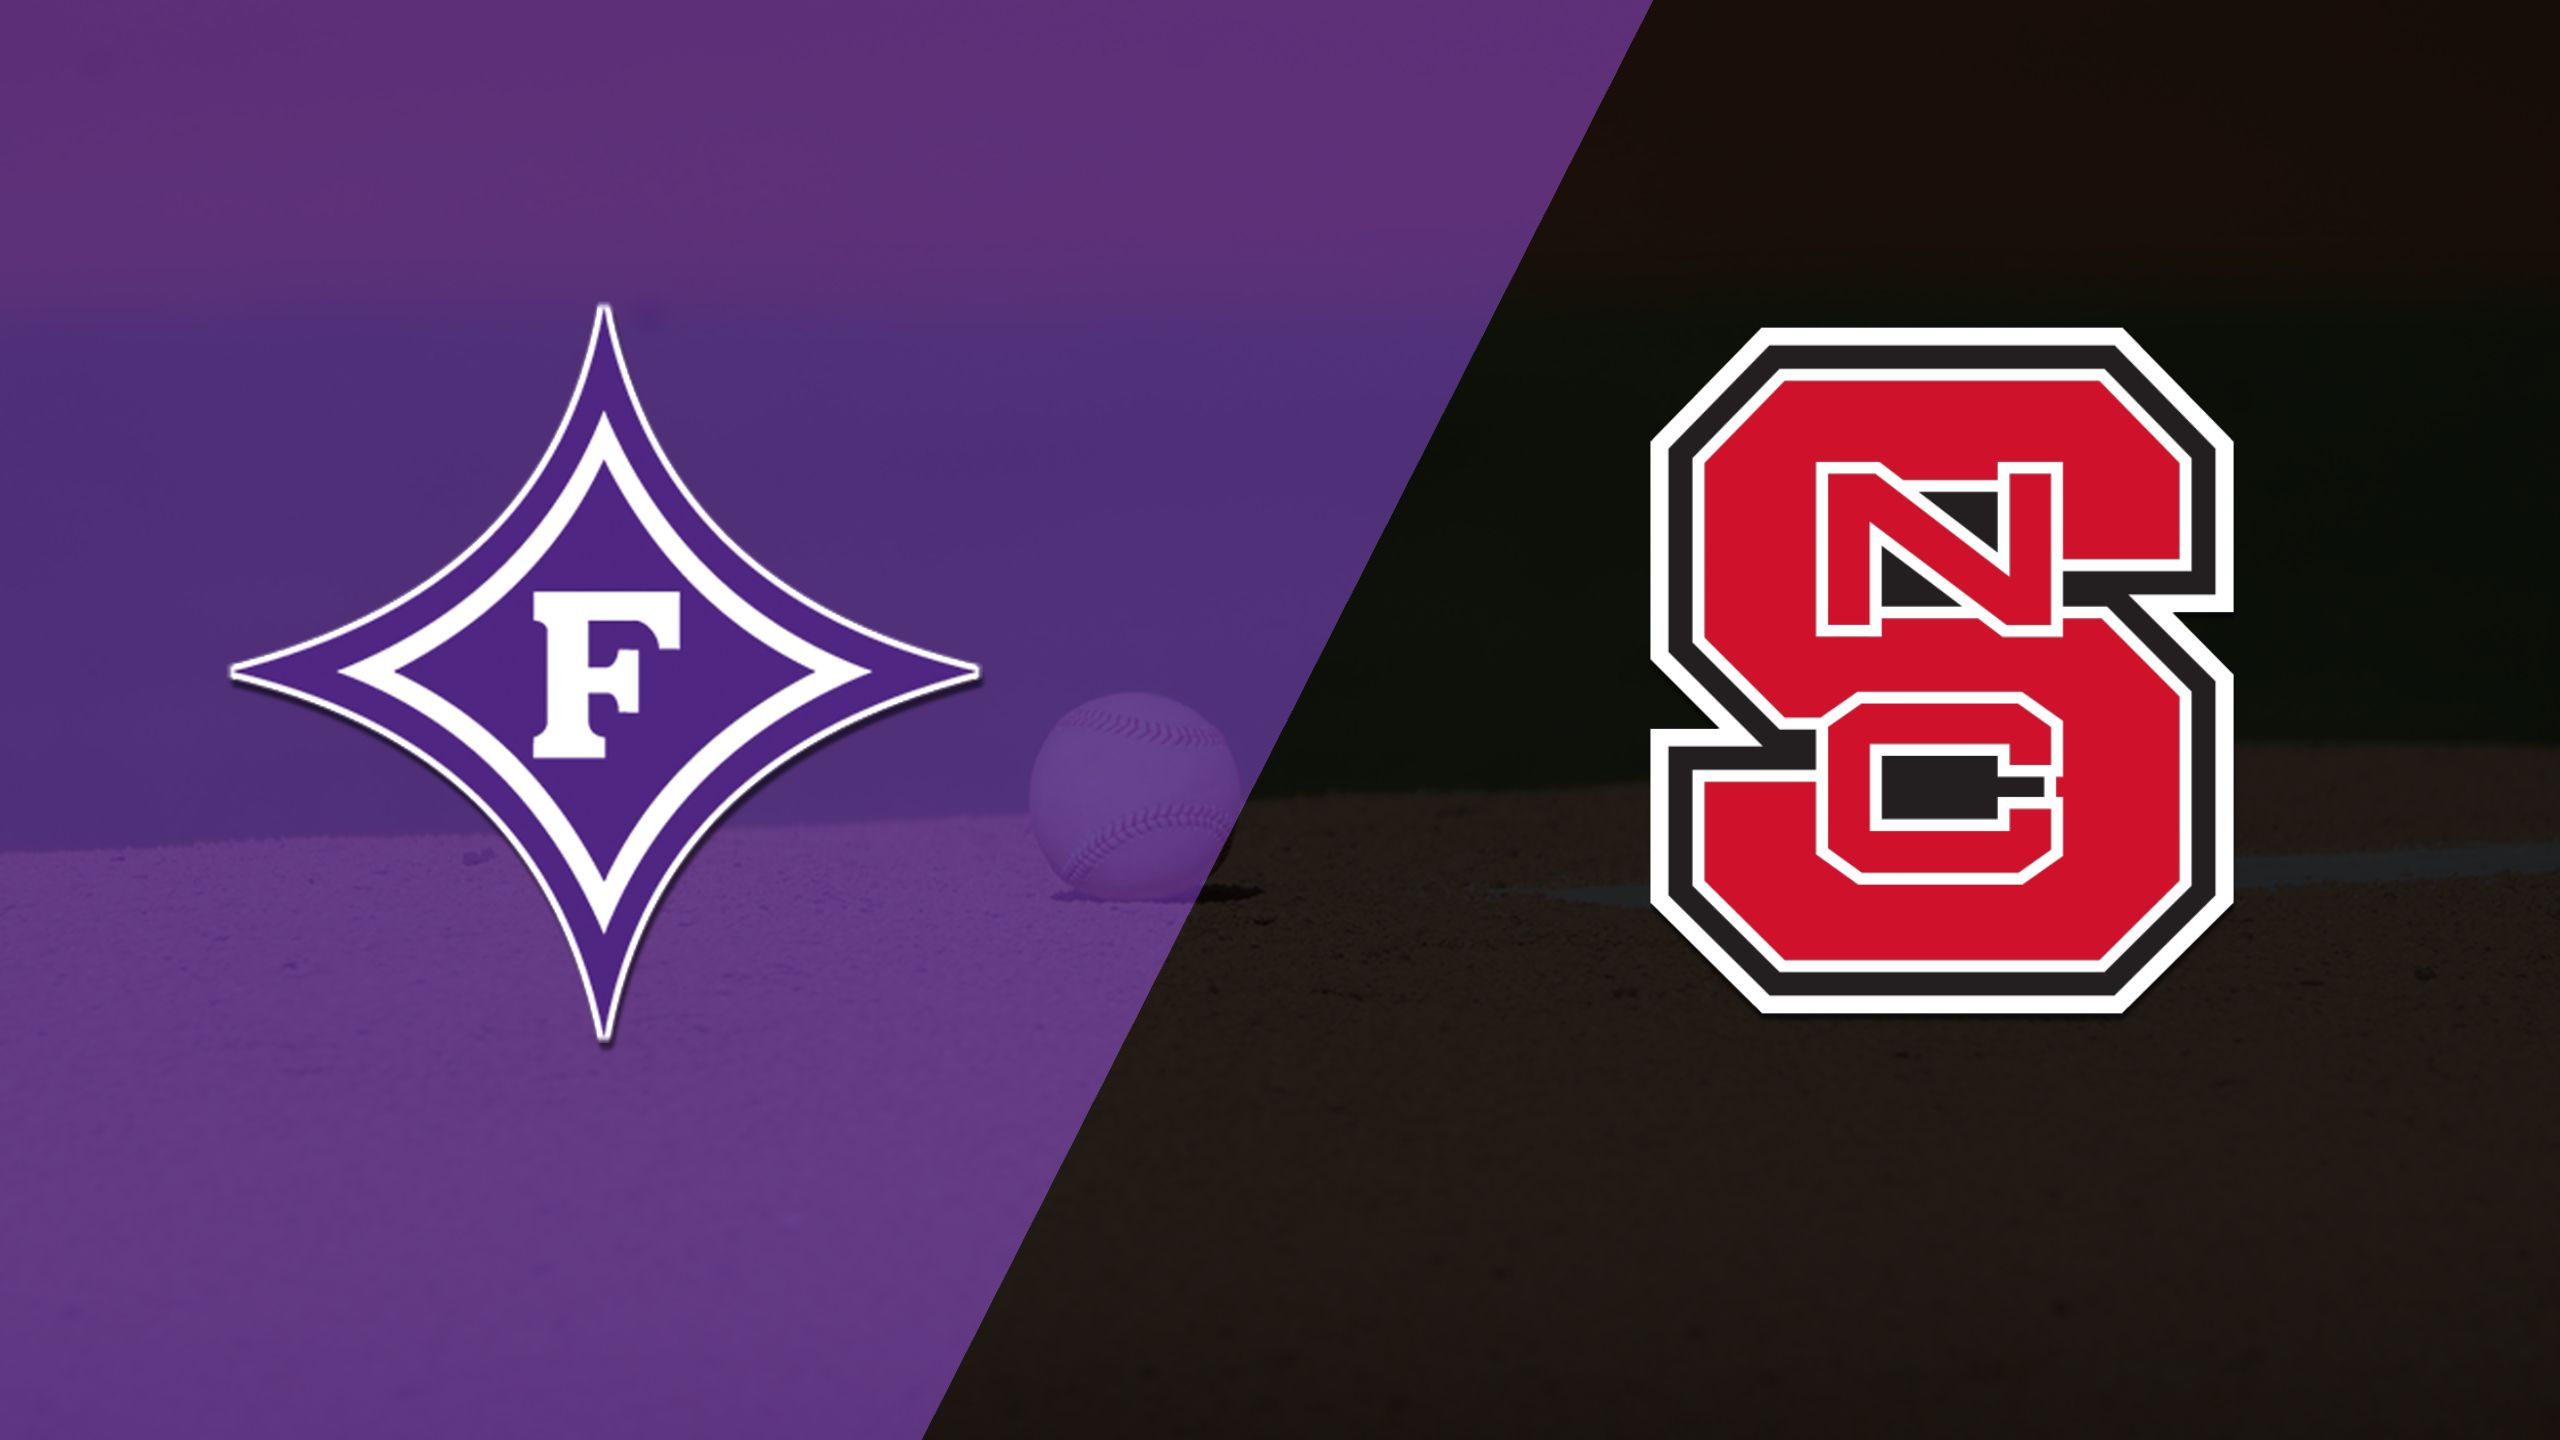 Furman vs. #25 NC State (Baseball)